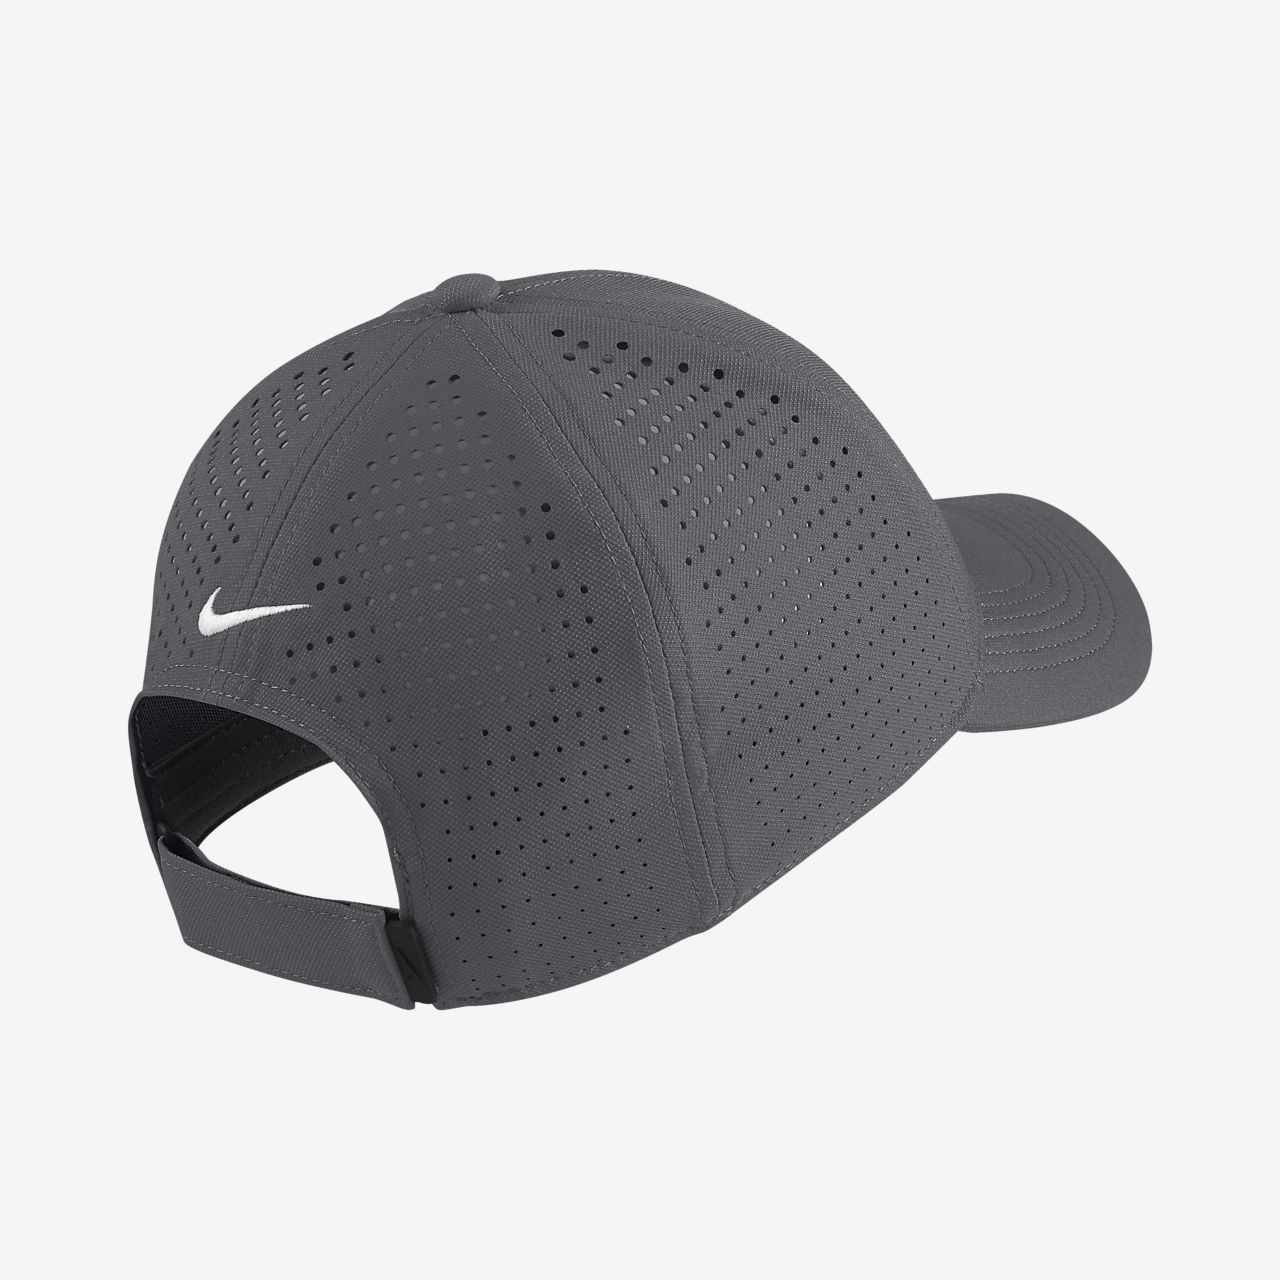 f574ff63bef Nike Legacy 91 Perforated Adjustable Golf Hat. Nike.com